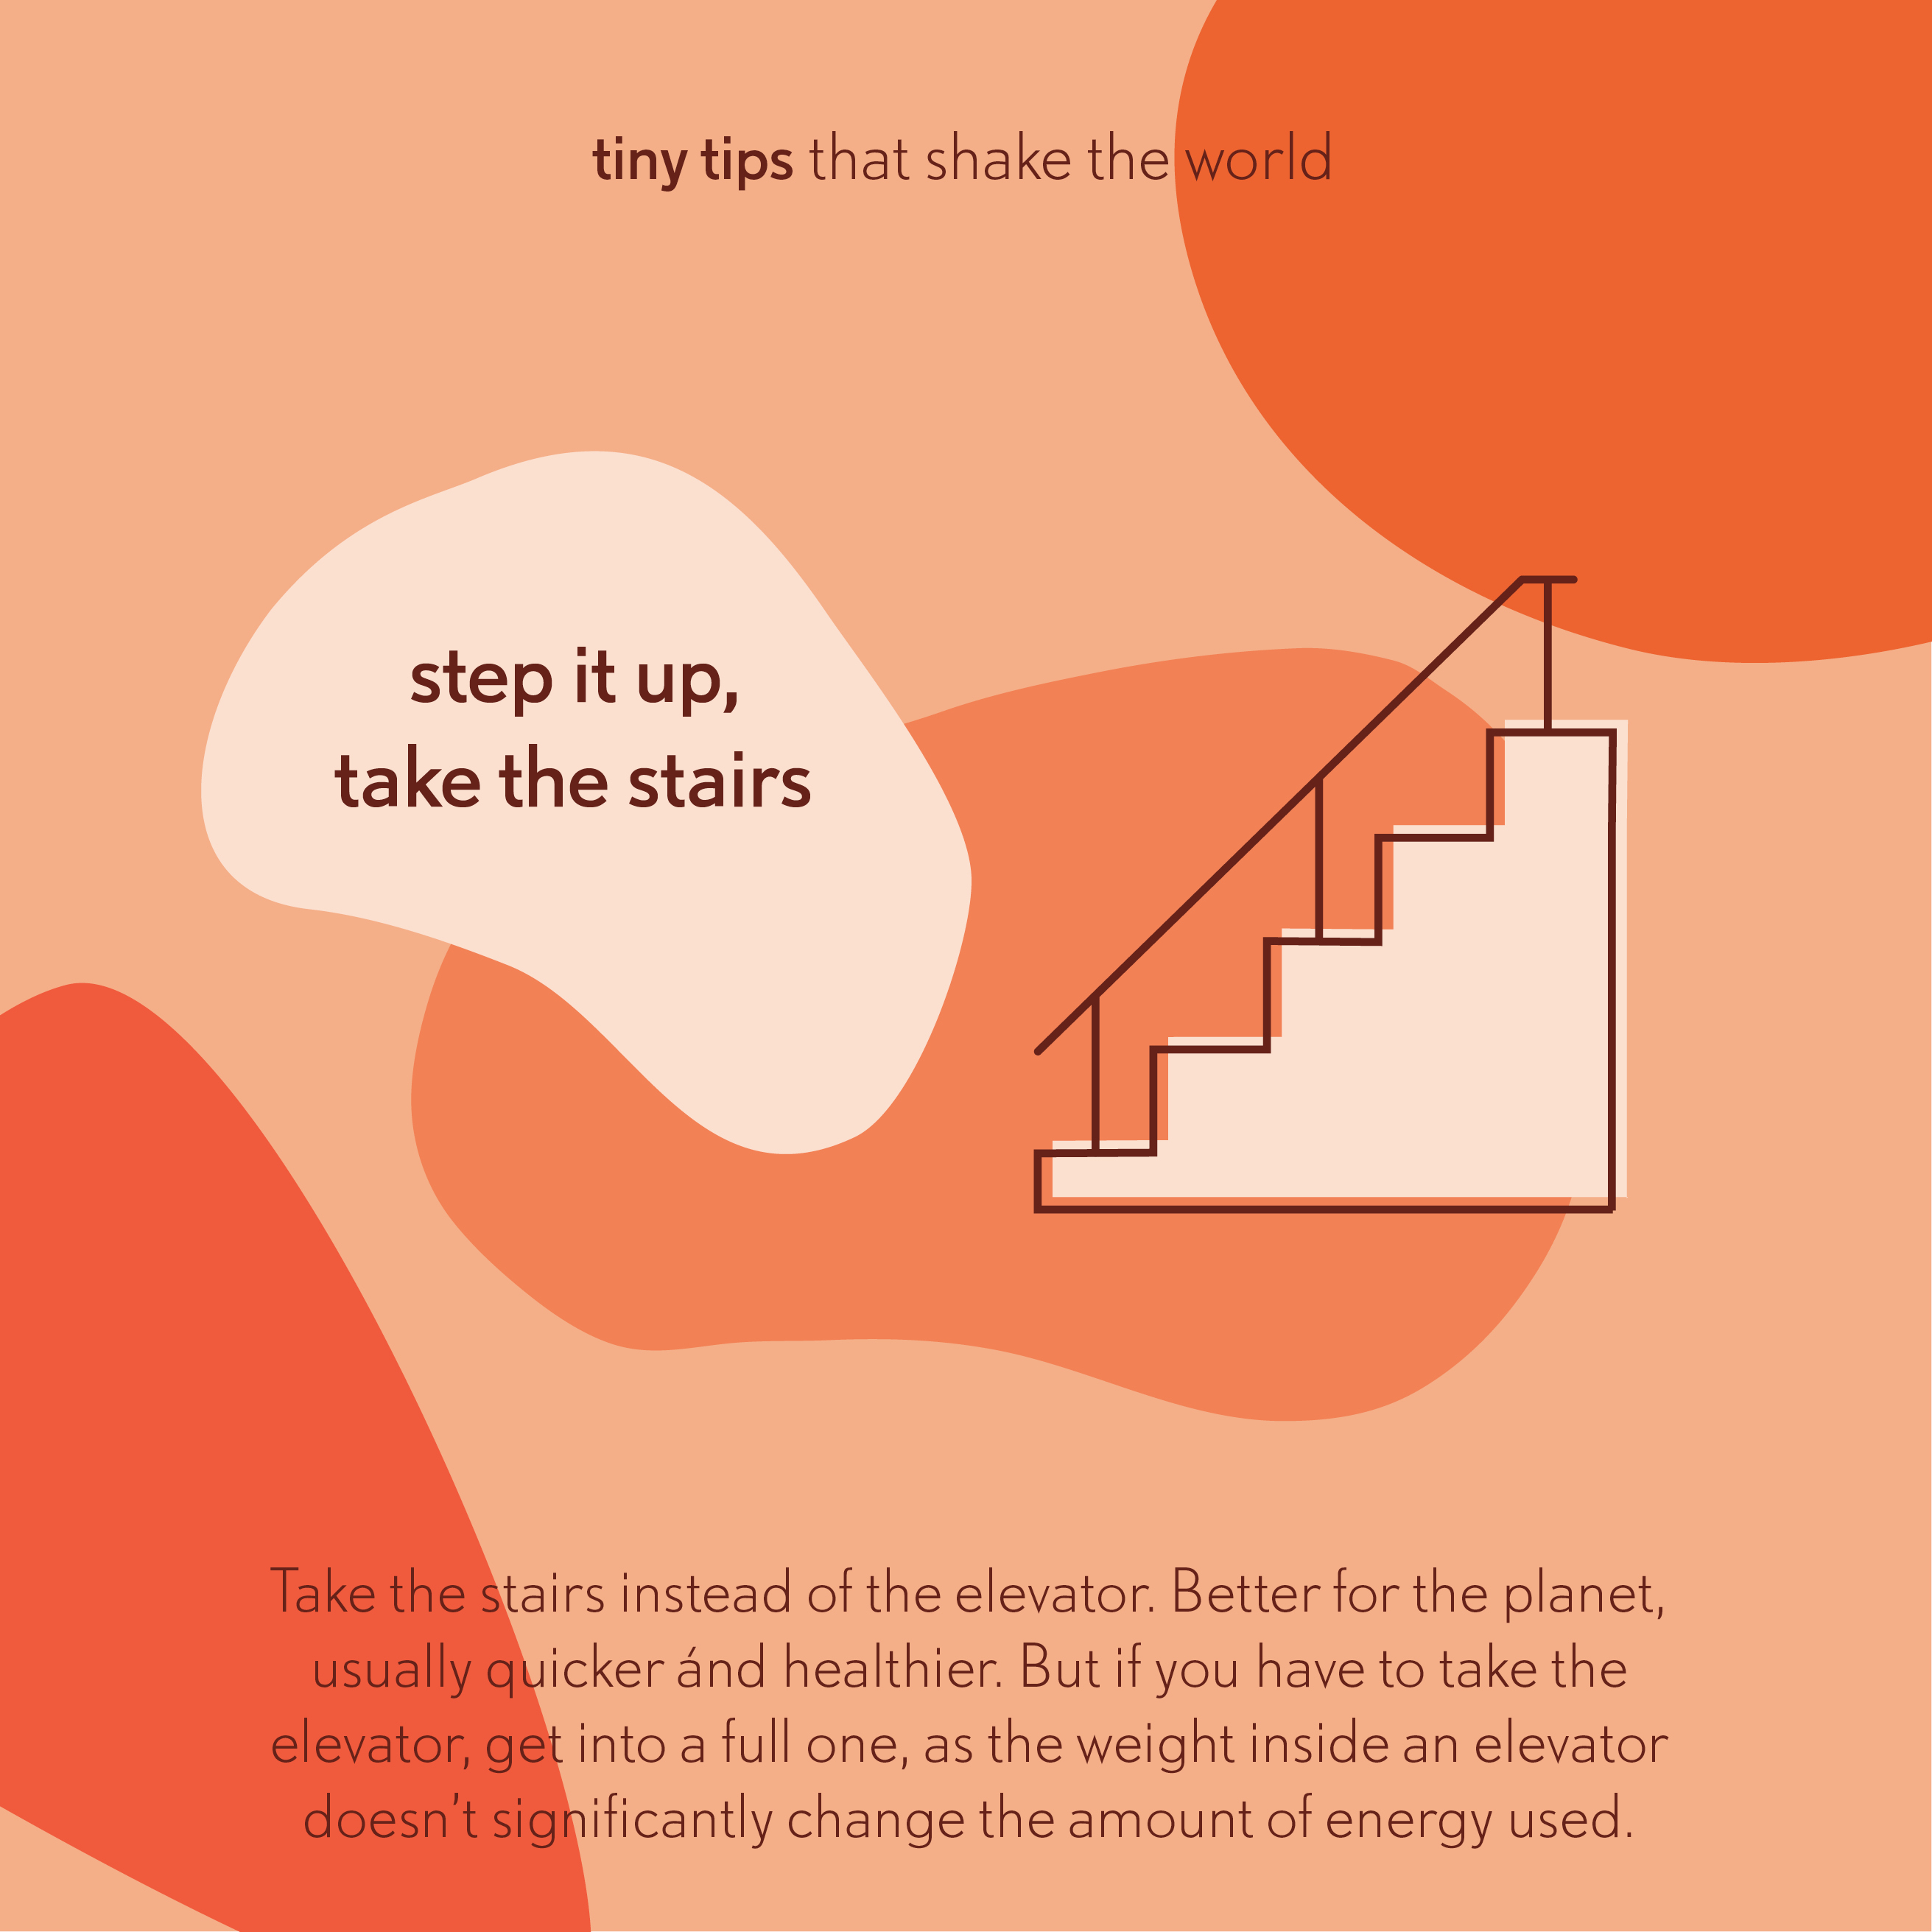 20190123 Step it up, take the stairs